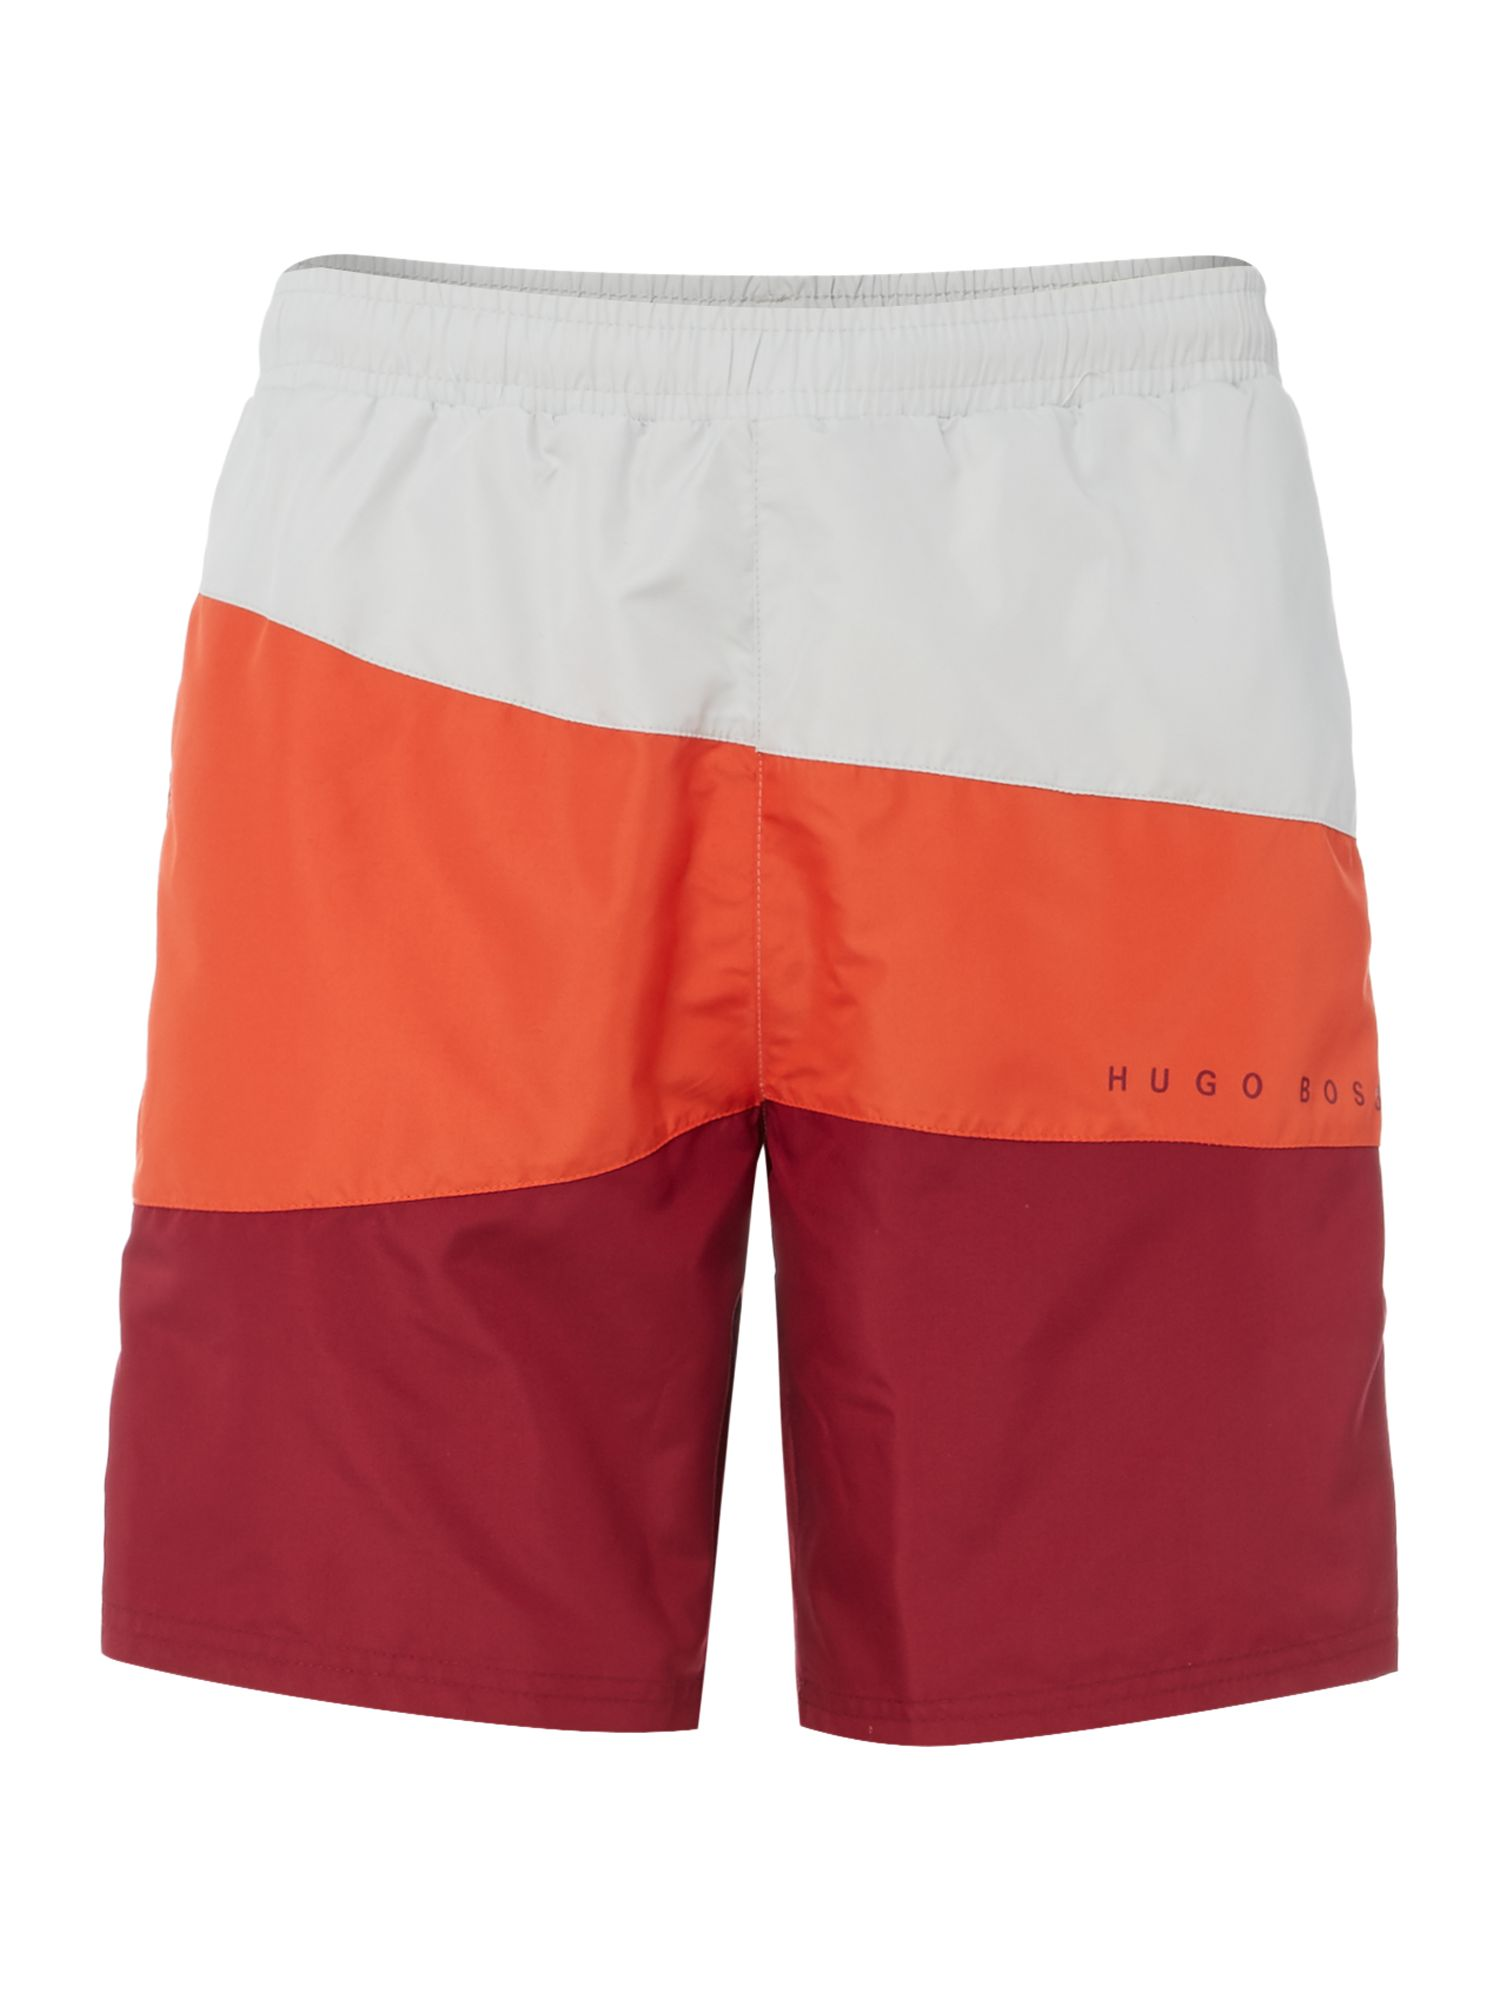 Men's Hugo Boss Butterflyfish Curve Striped Shorts, Orange